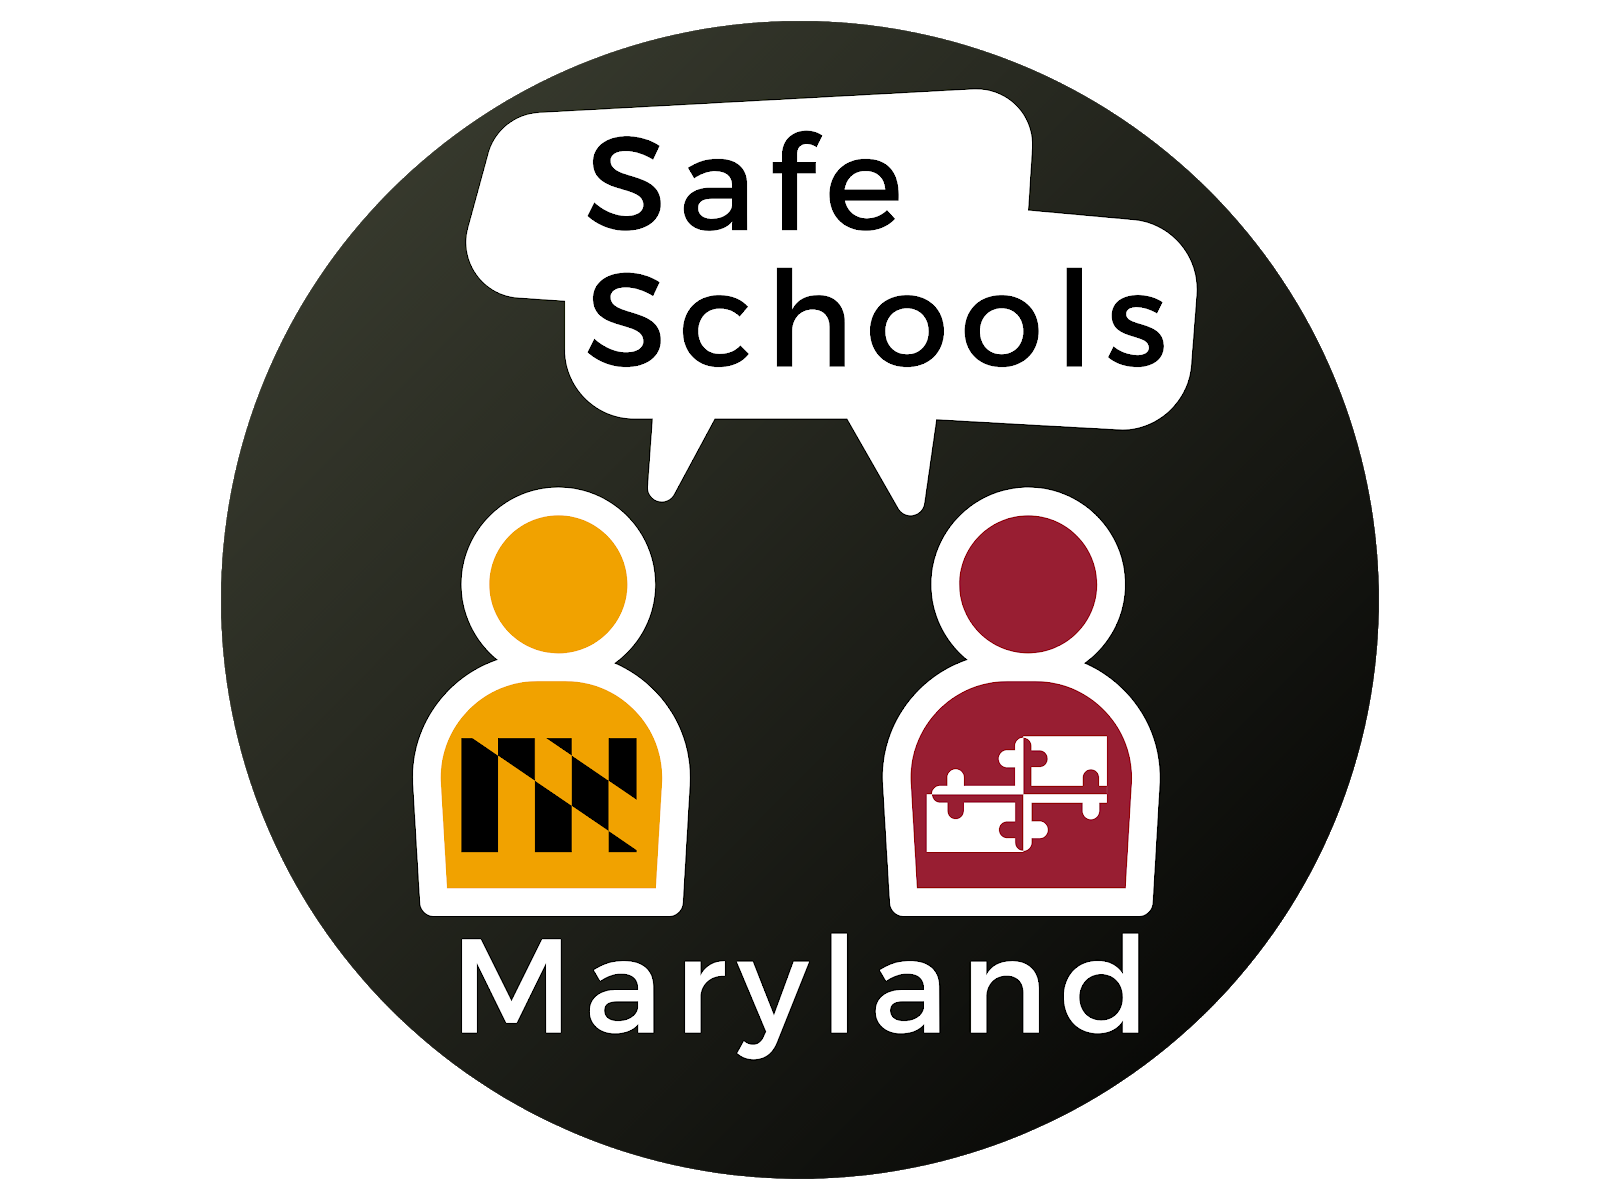 Safe Schools Maryland Logo Image